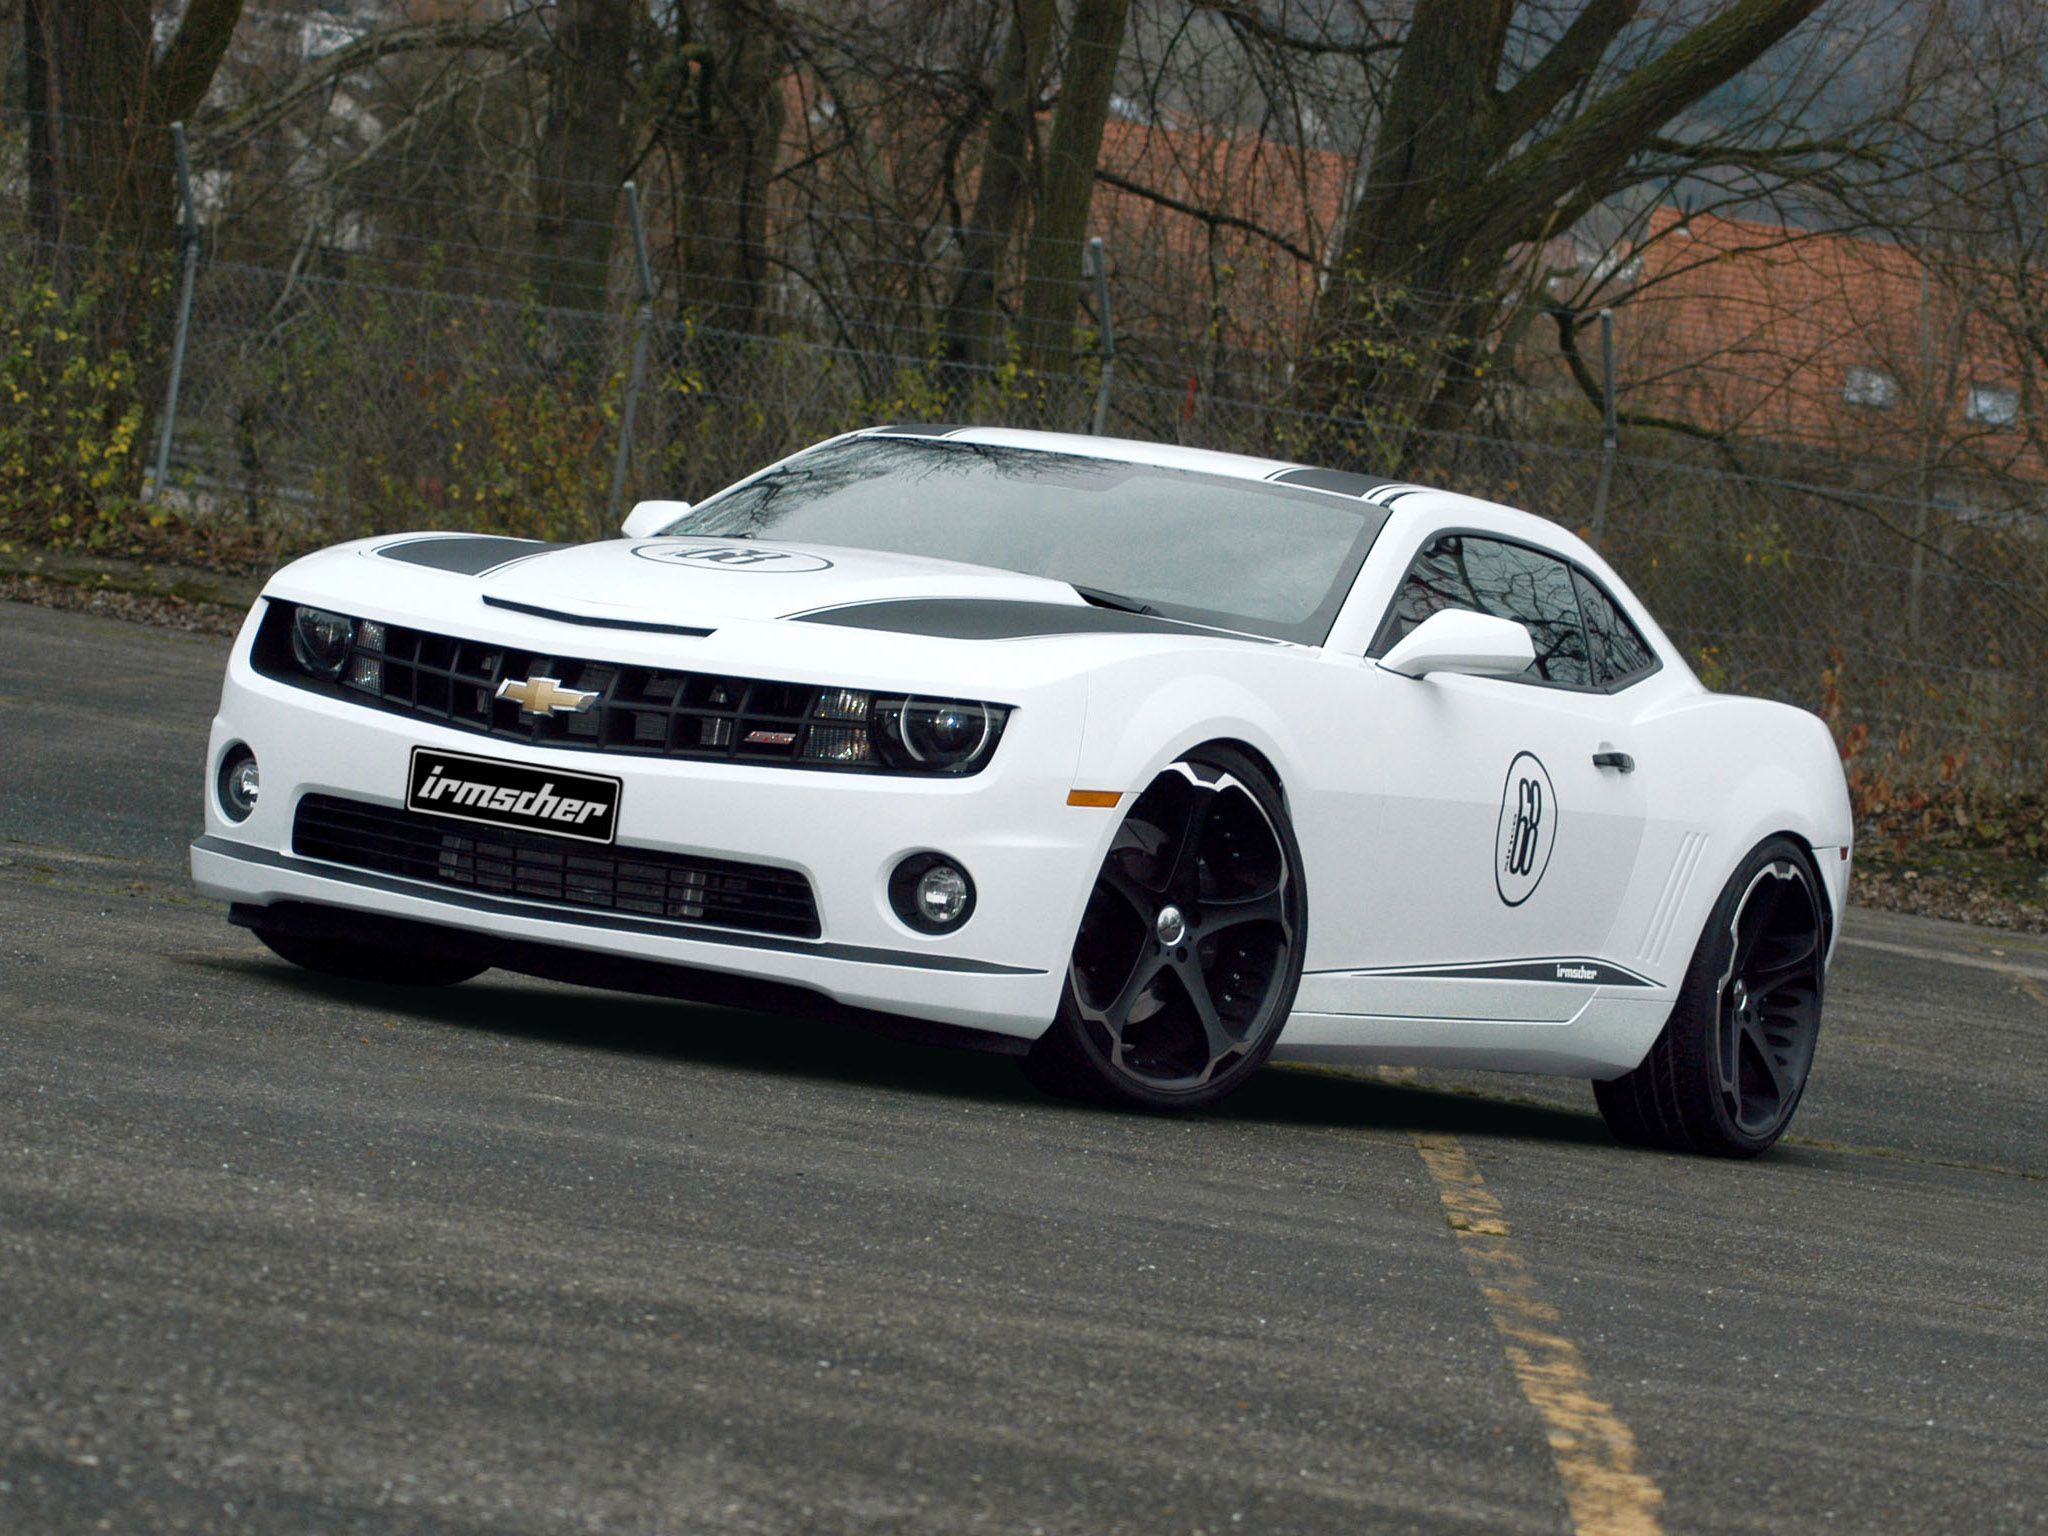 White Chevrolet Camaro On Street Car Picture Car Hd Wallpaper